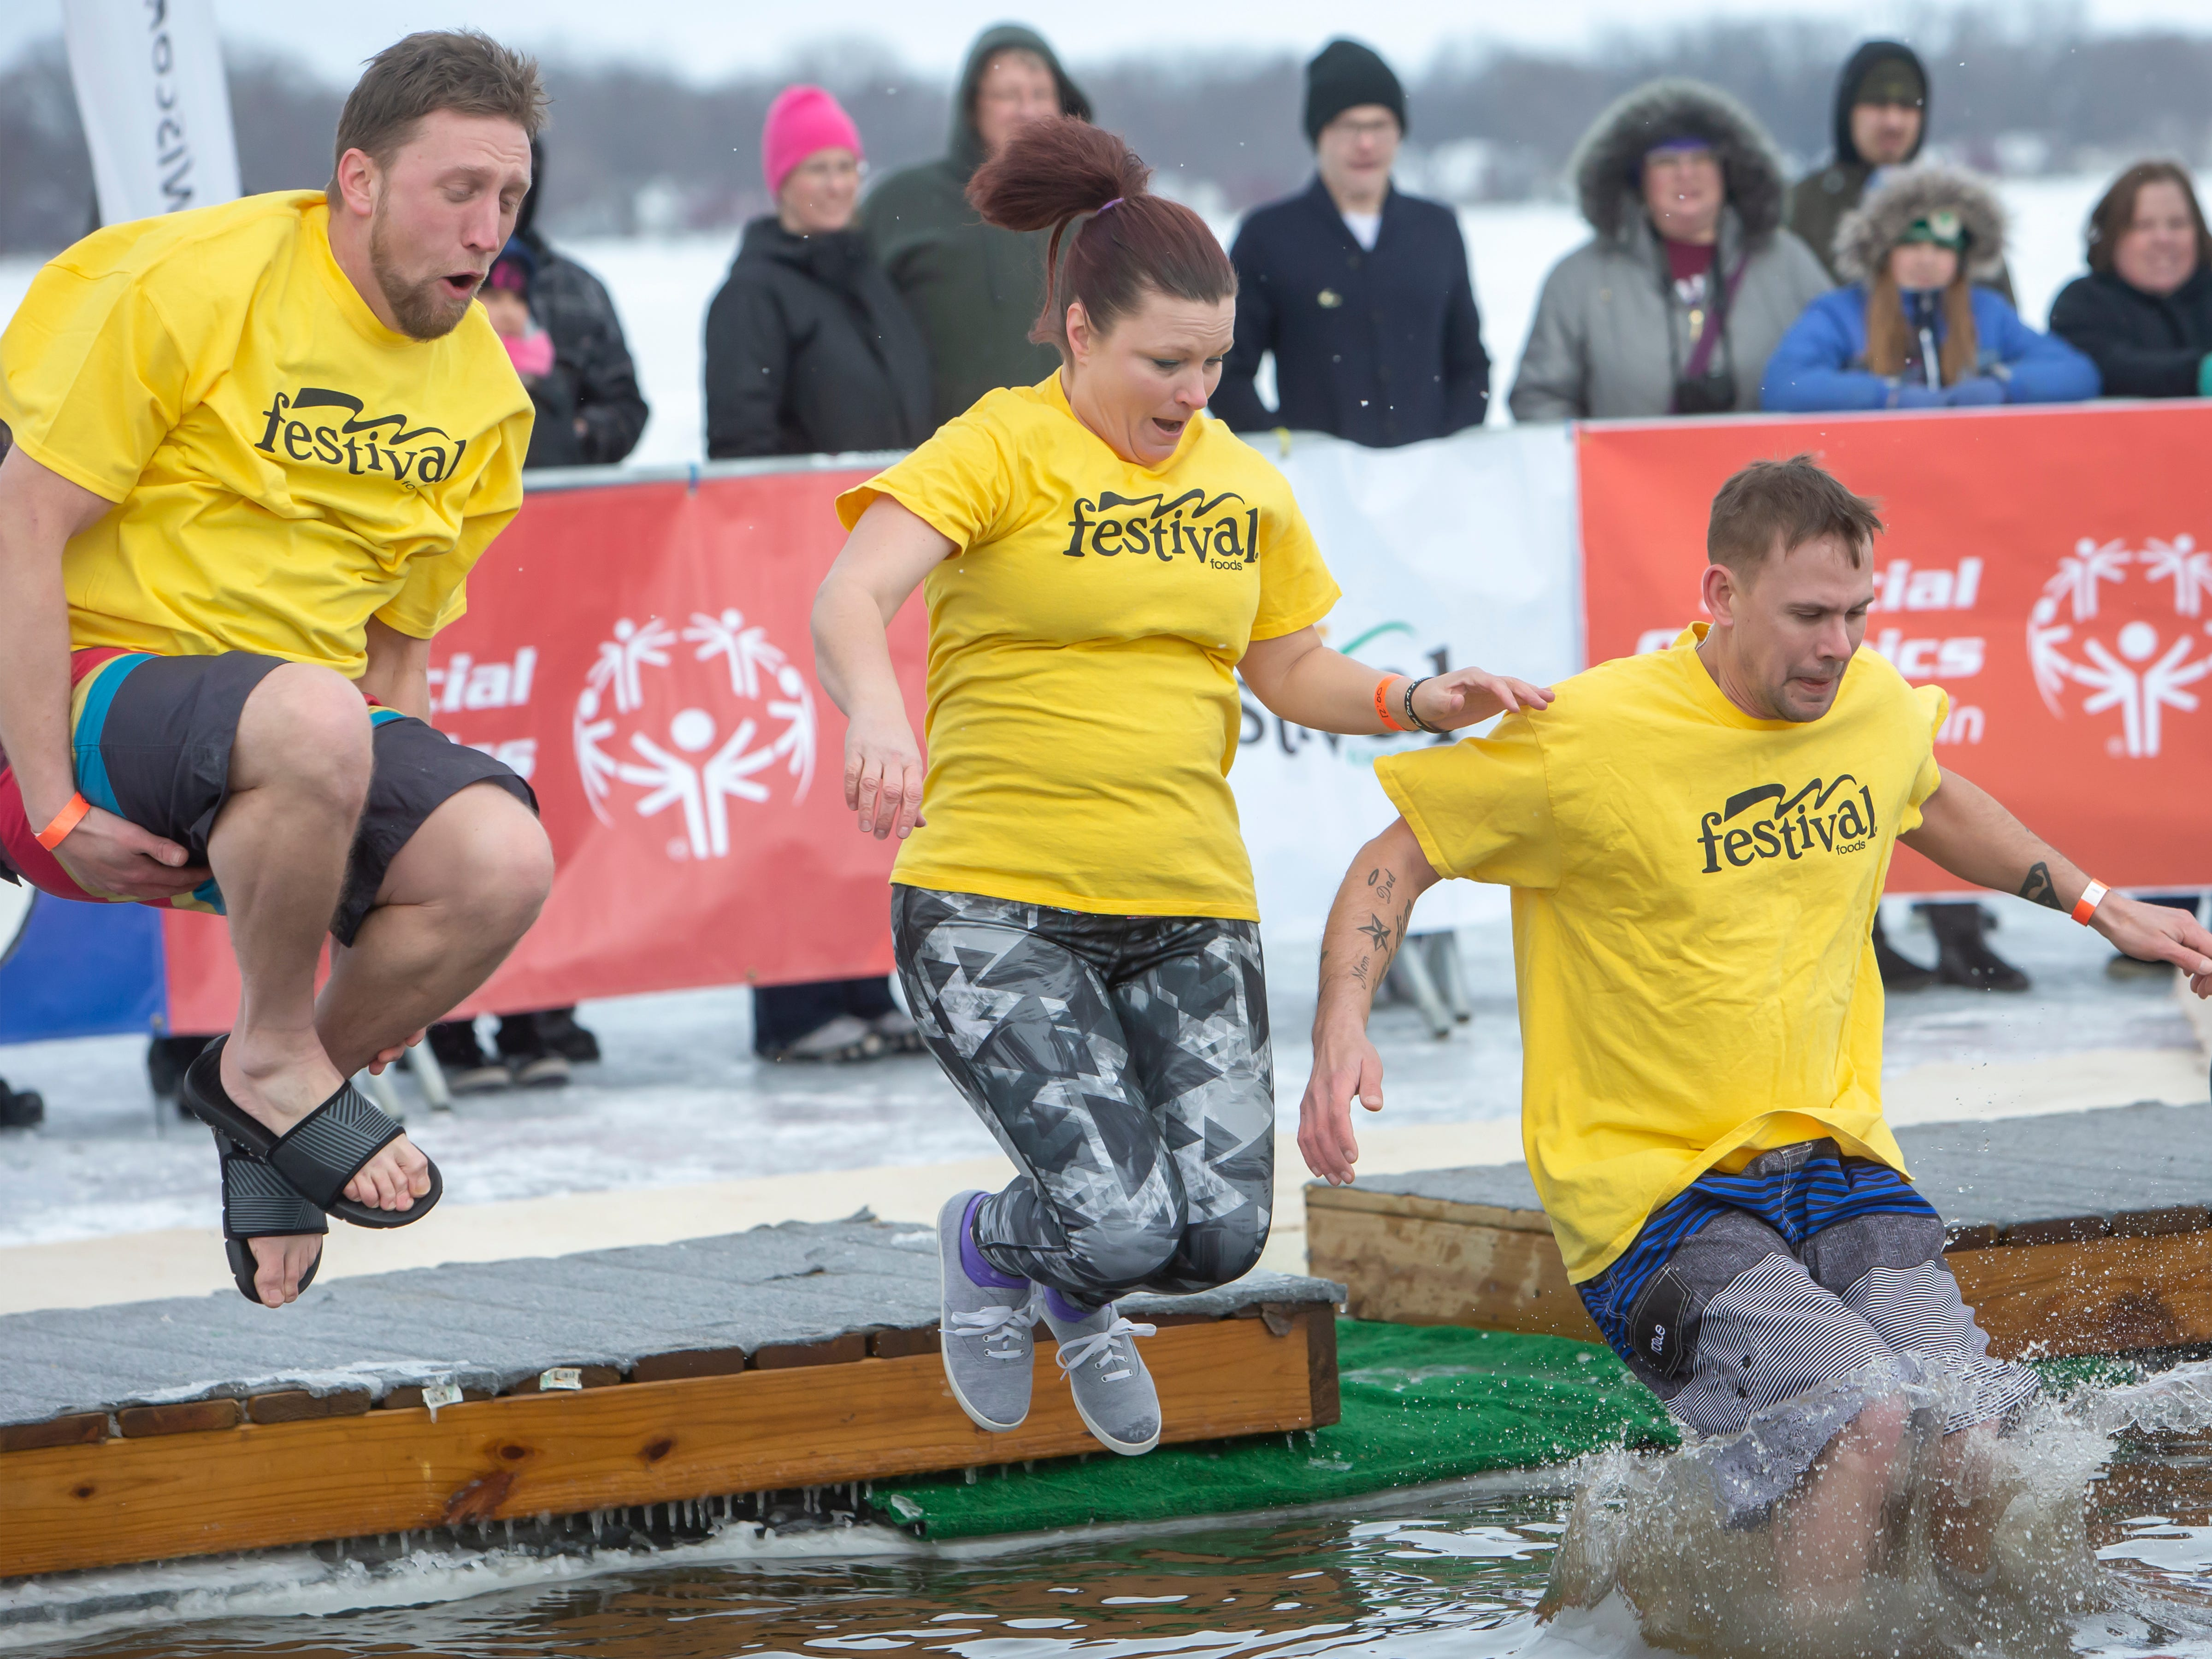 Festival Foods employees brave the cold plunging during the Special Olympics Wisconsin Polar Plunge in Oshkosh, Wis., on Saturday, February 16, 2019, at Miller's Bay in Menominee Park.